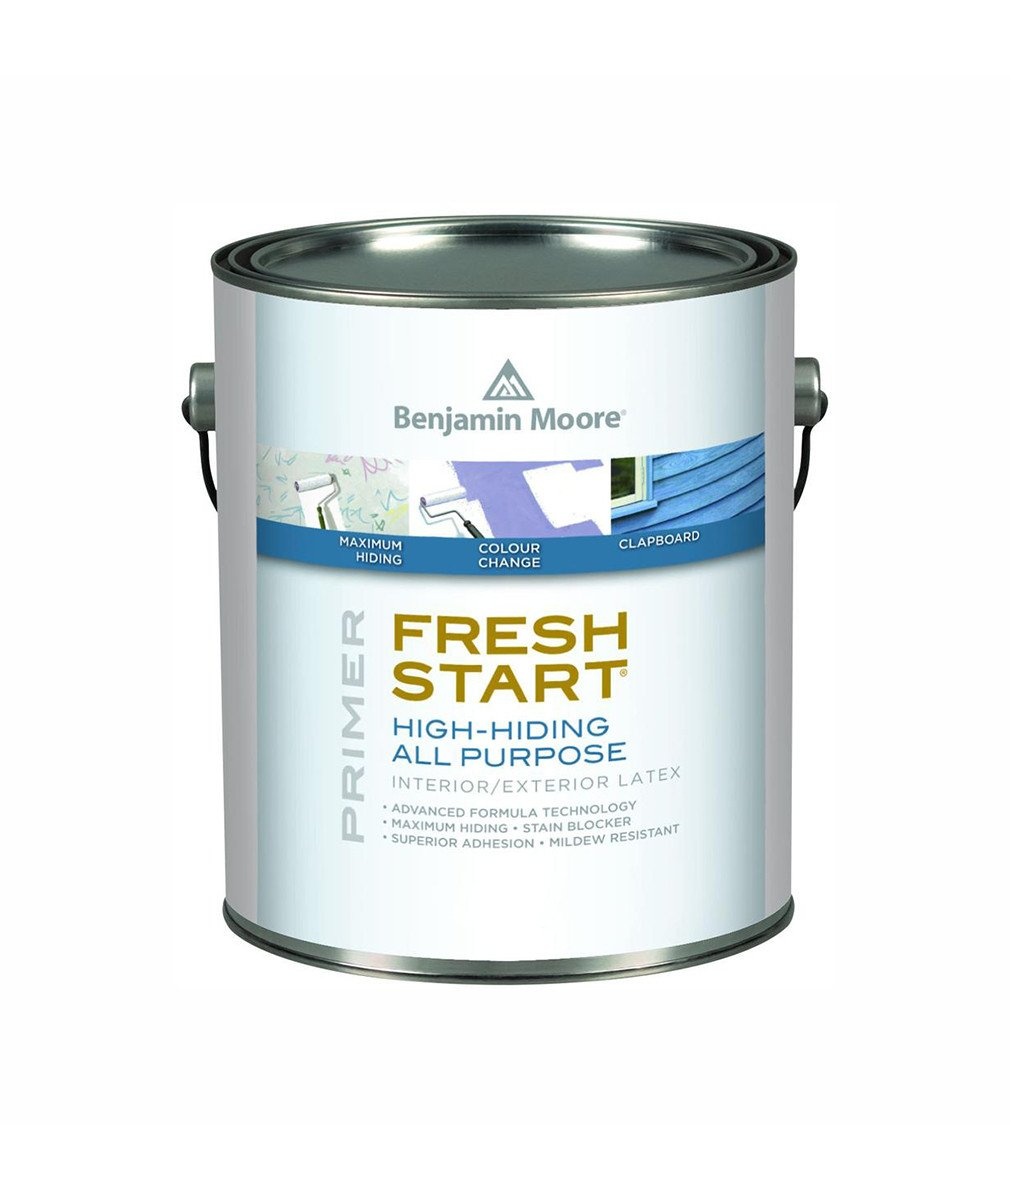 Fresh Start Premium Interior Primer - A complete line of interior premium primers deliver the exceptional adhesion and holdout required for a smooth and durable topcoat.Available in quart or gallon sizes.Quart Price: $30.99 + HSTGallon Price: $68.99 + HST